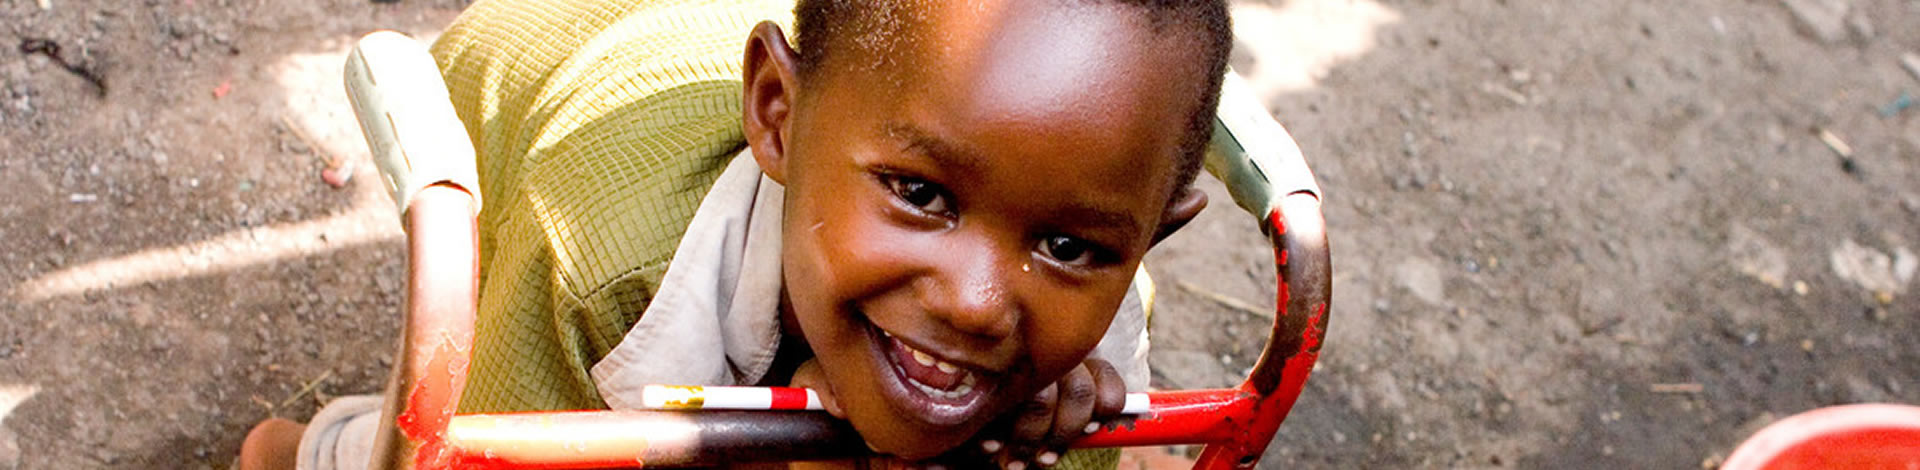 Muzuku has cerebral palsy and he is standing up with his red waggon.